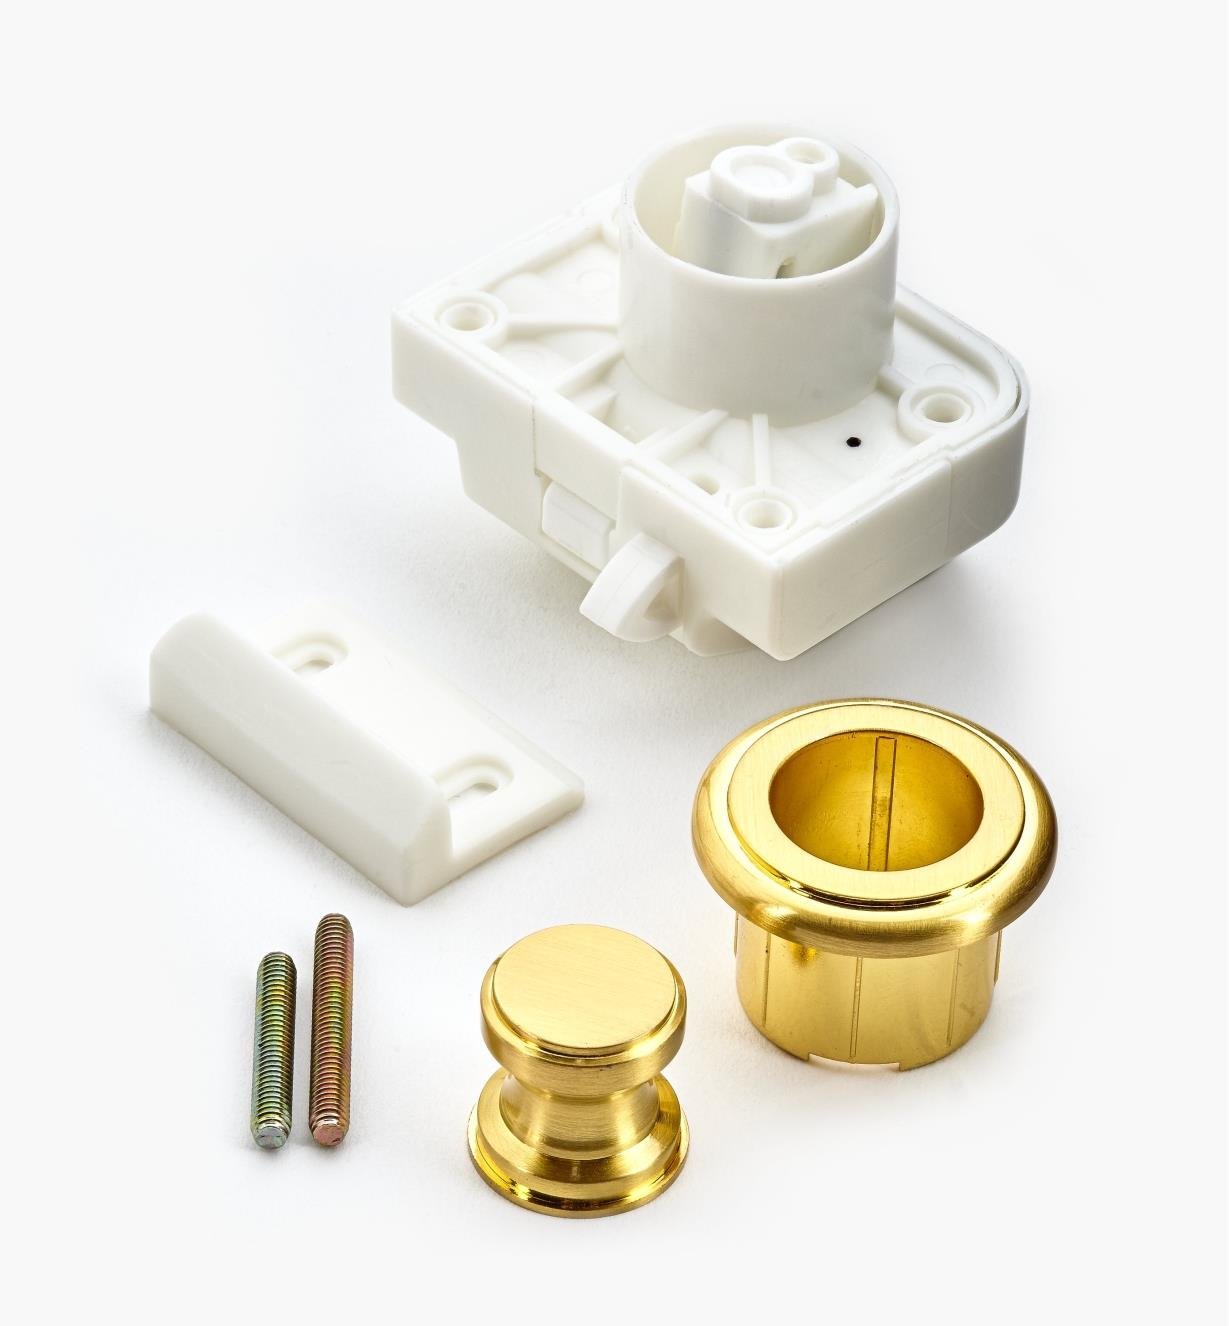 00S3211 - Satin Brass Push Knob/Catch